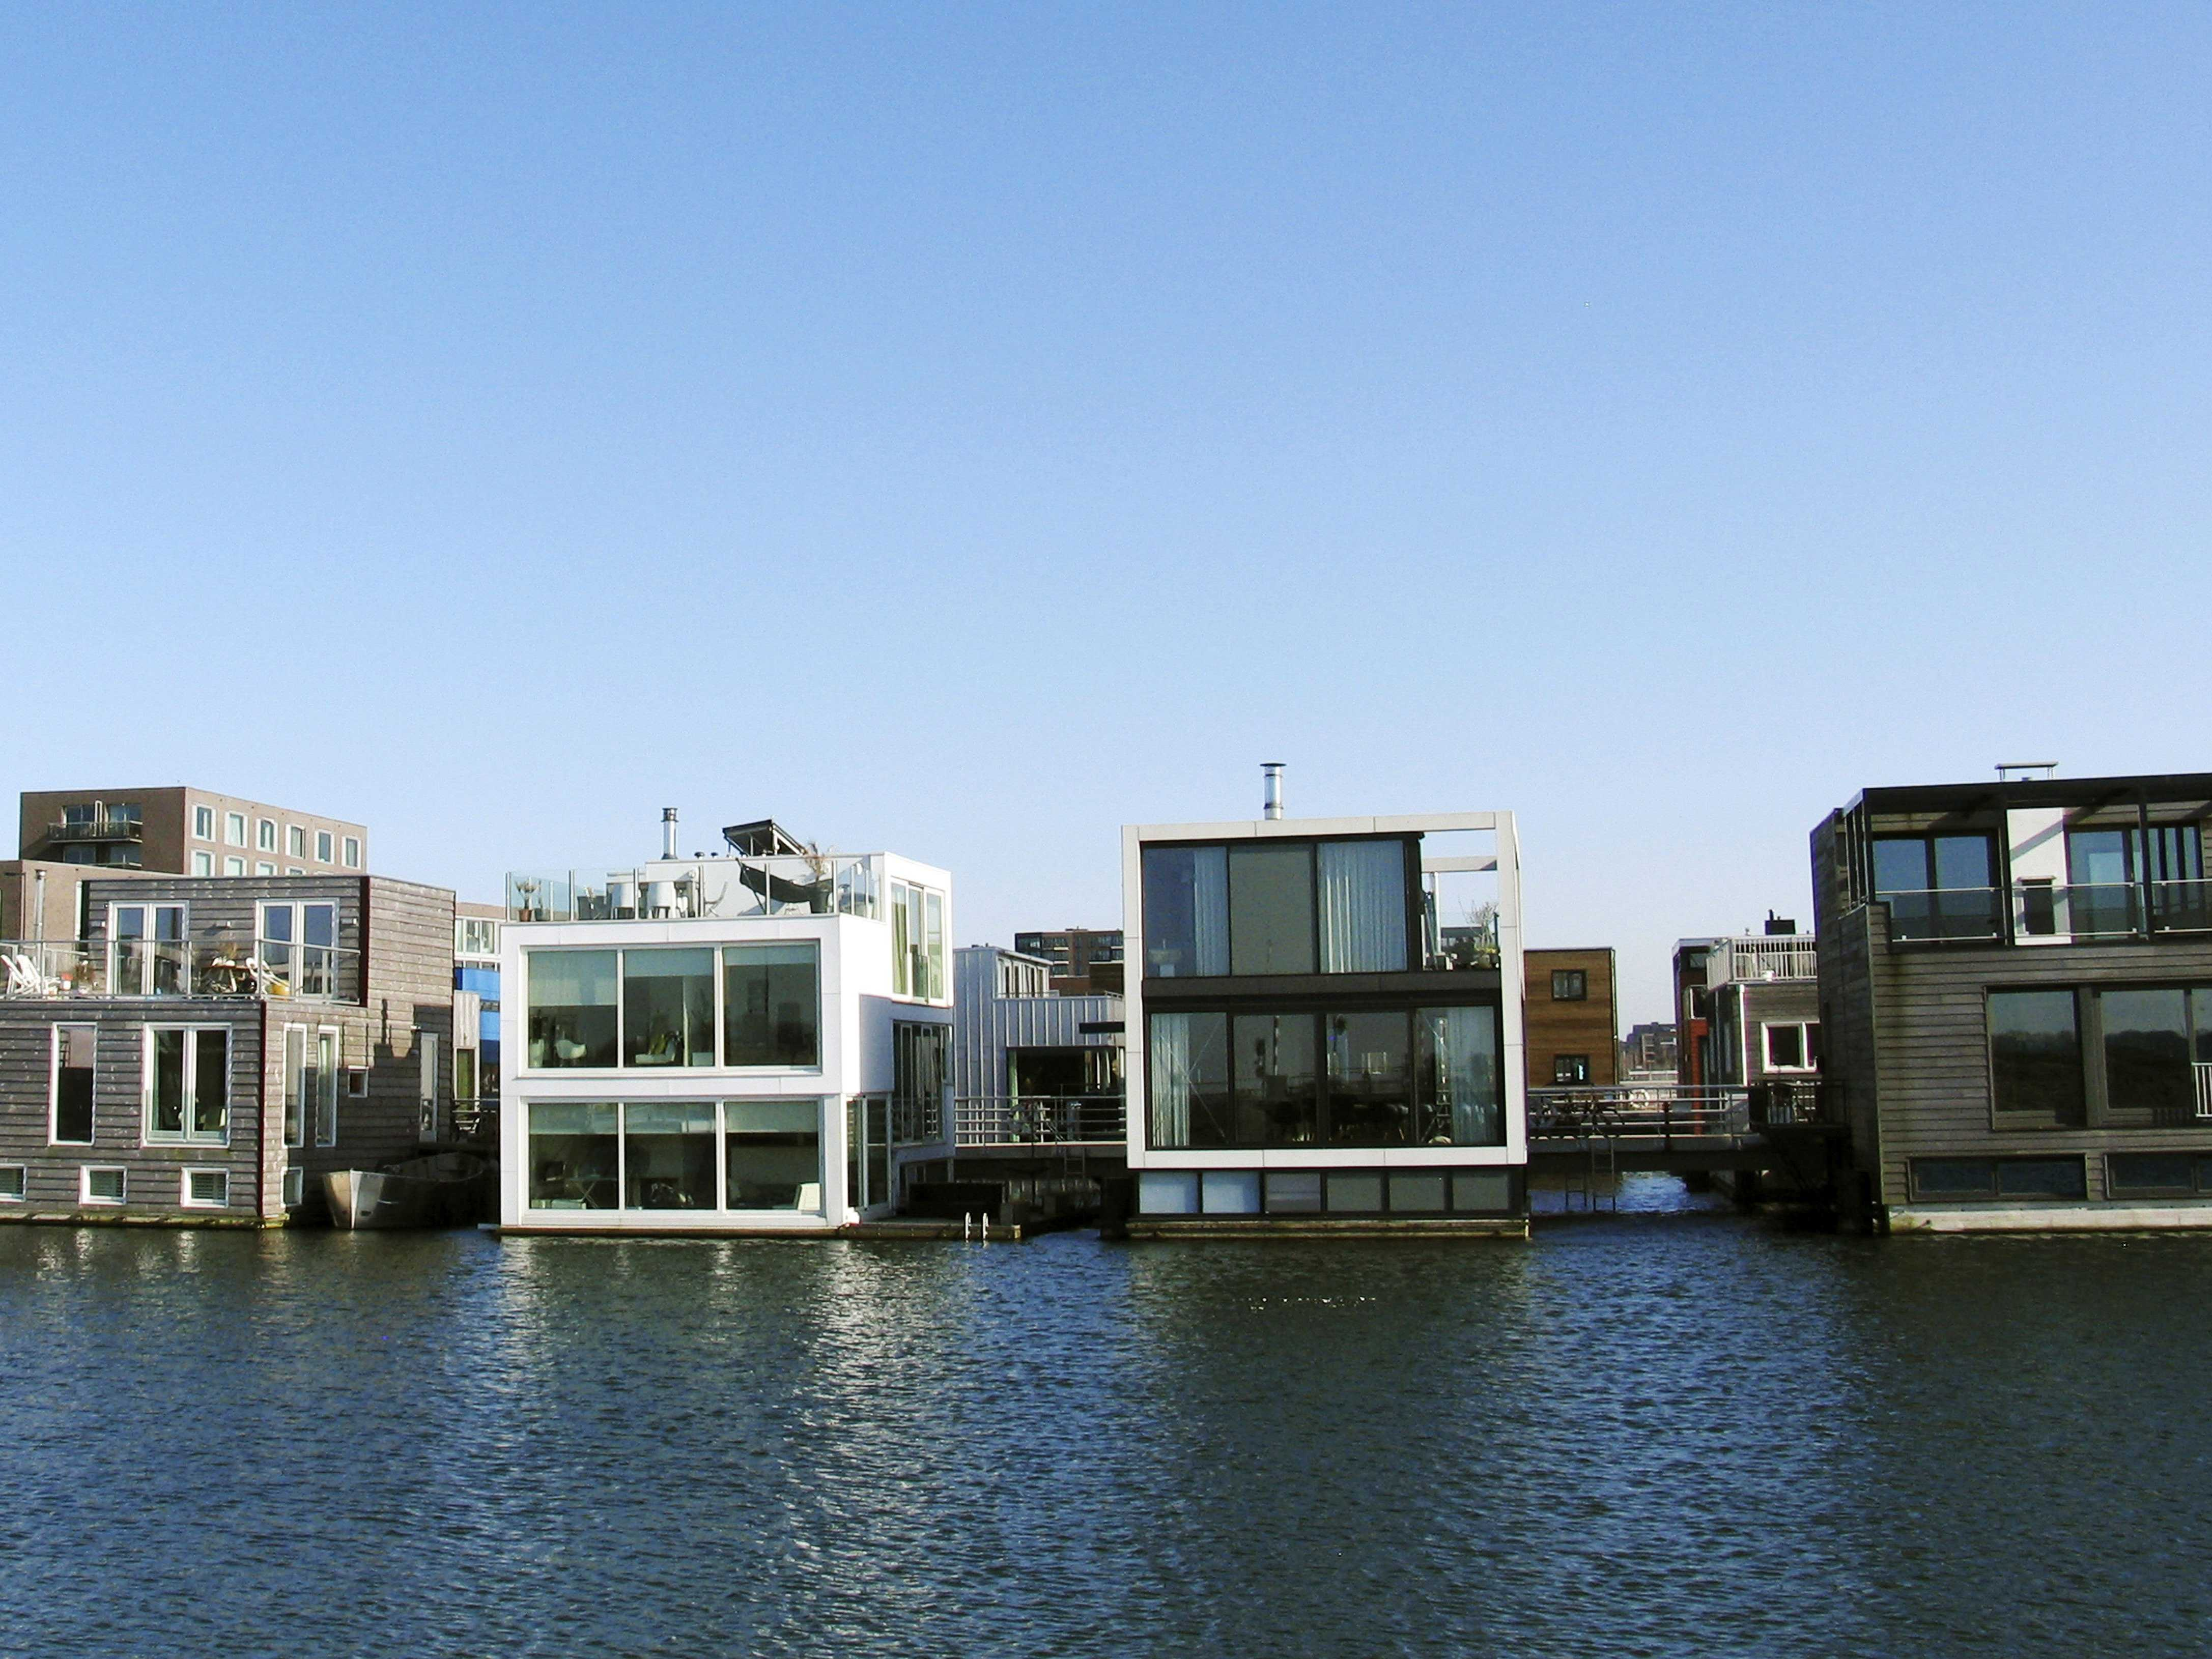 The Netherlands is building houses that float on water - Business ...